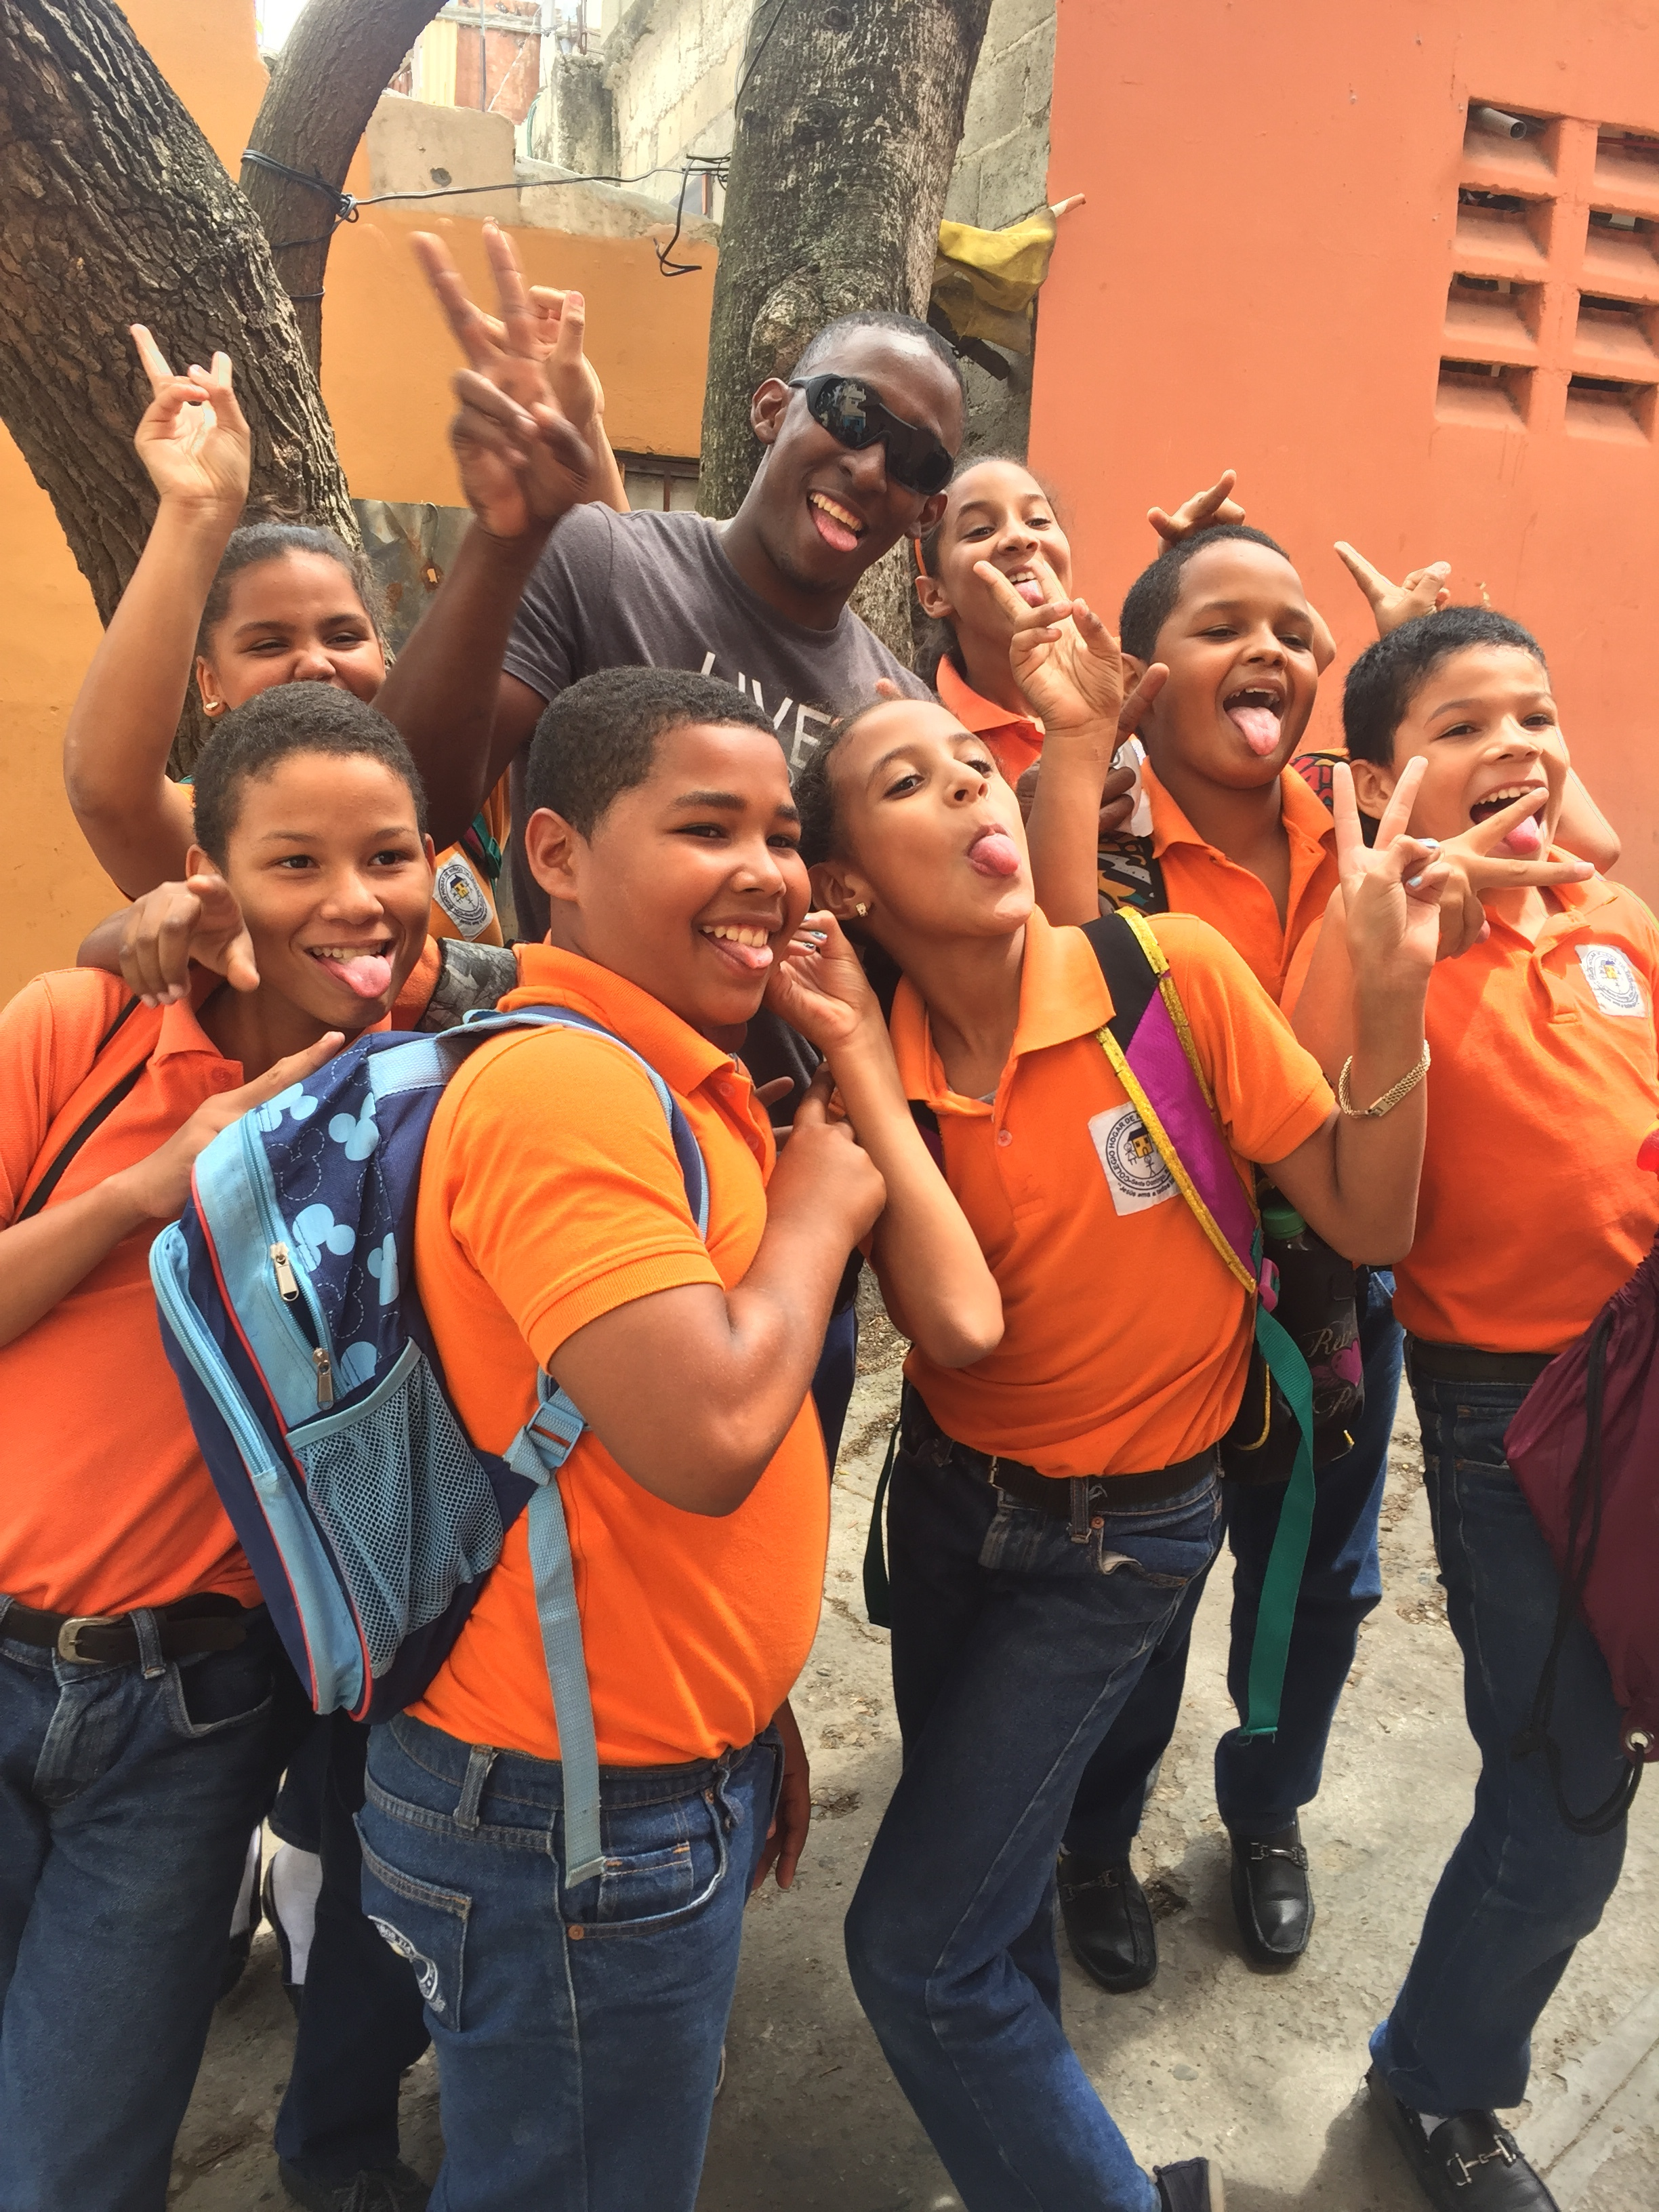 Afternoon students at Hogar de Ninos Tia Tatiana